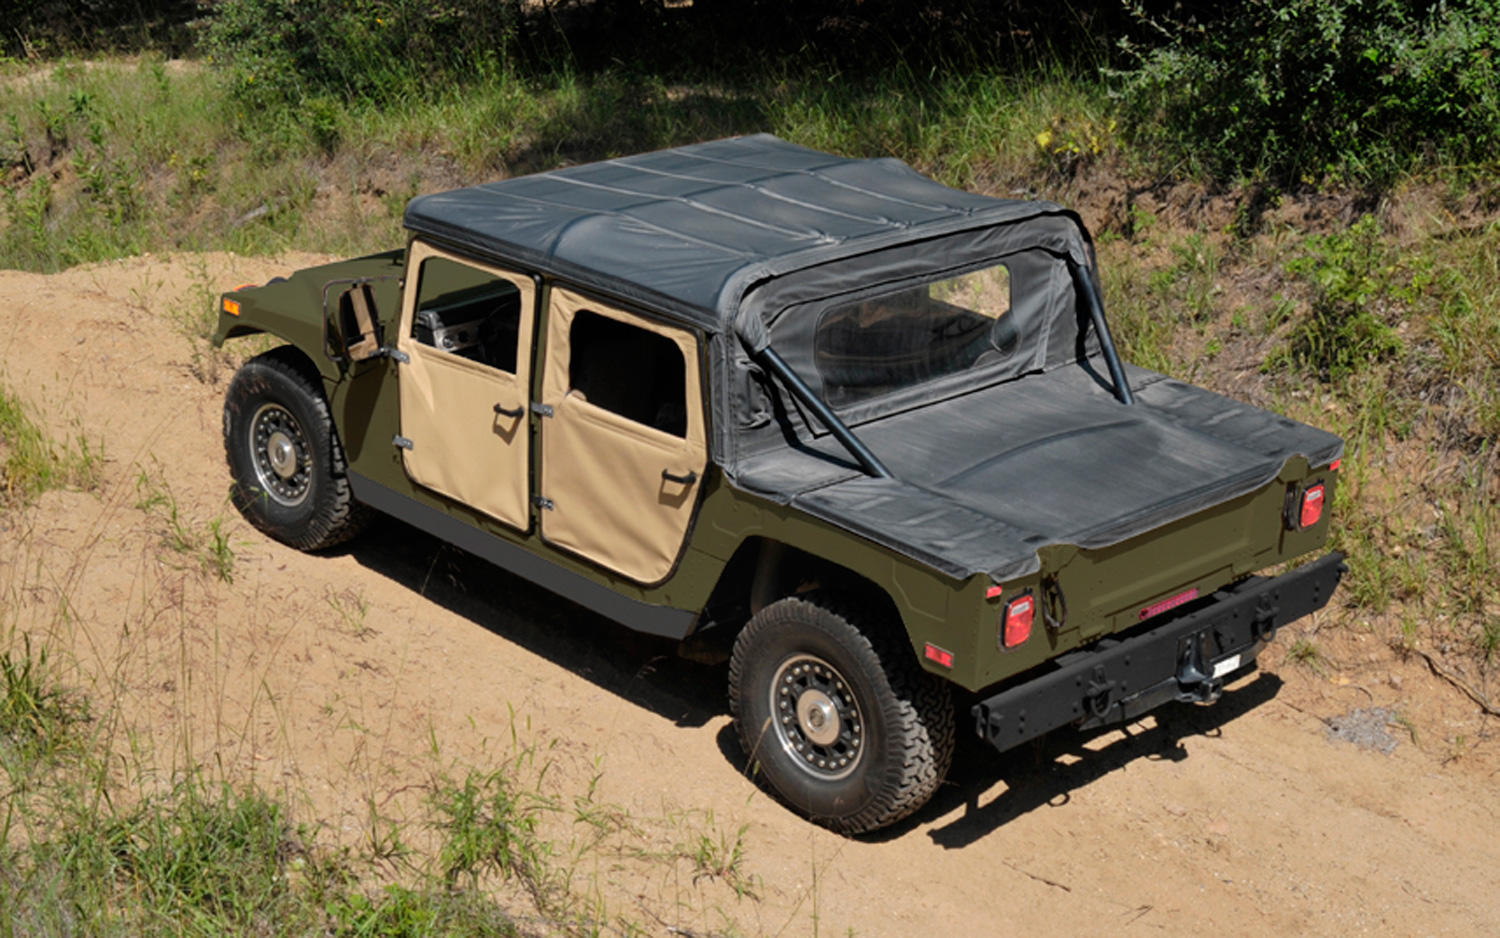 2013 AM General Humvee C Series rear view?impolicy=entryimage diy h1 am general announces new $59,995 civilian humvee c series